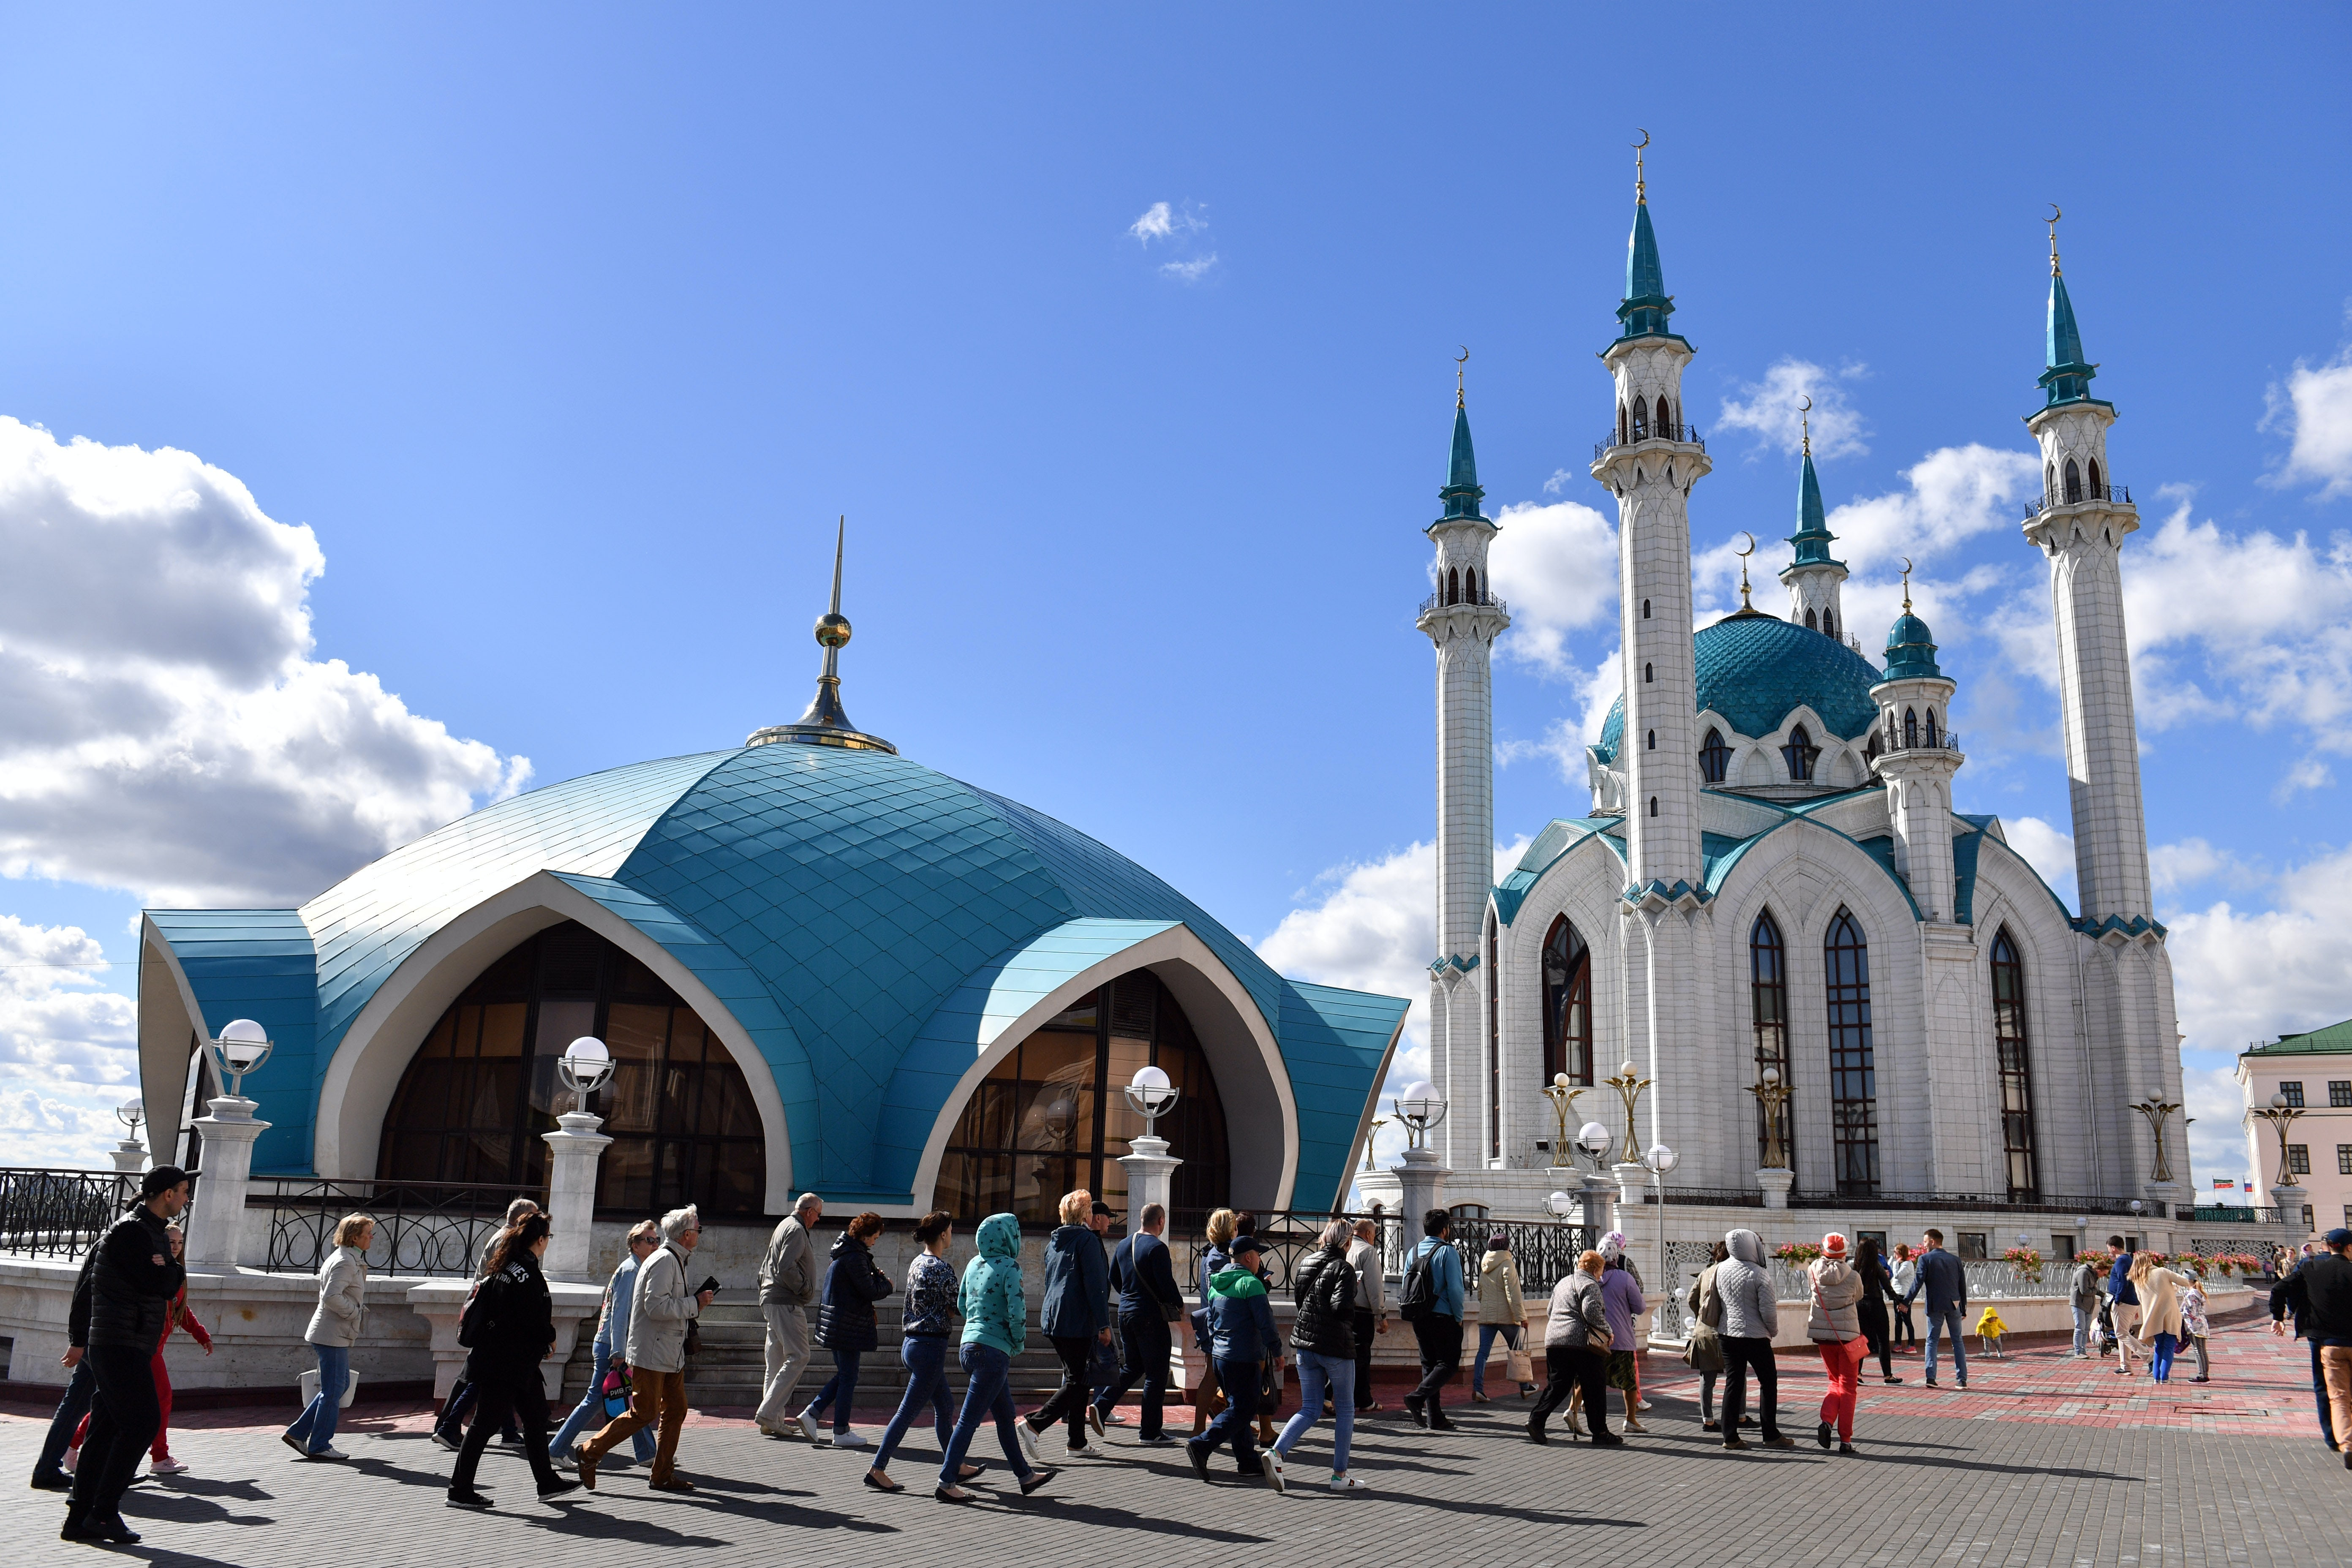 The Kul-Sharif Mosque is a landmark in Kazan, Russia. Getty Images.